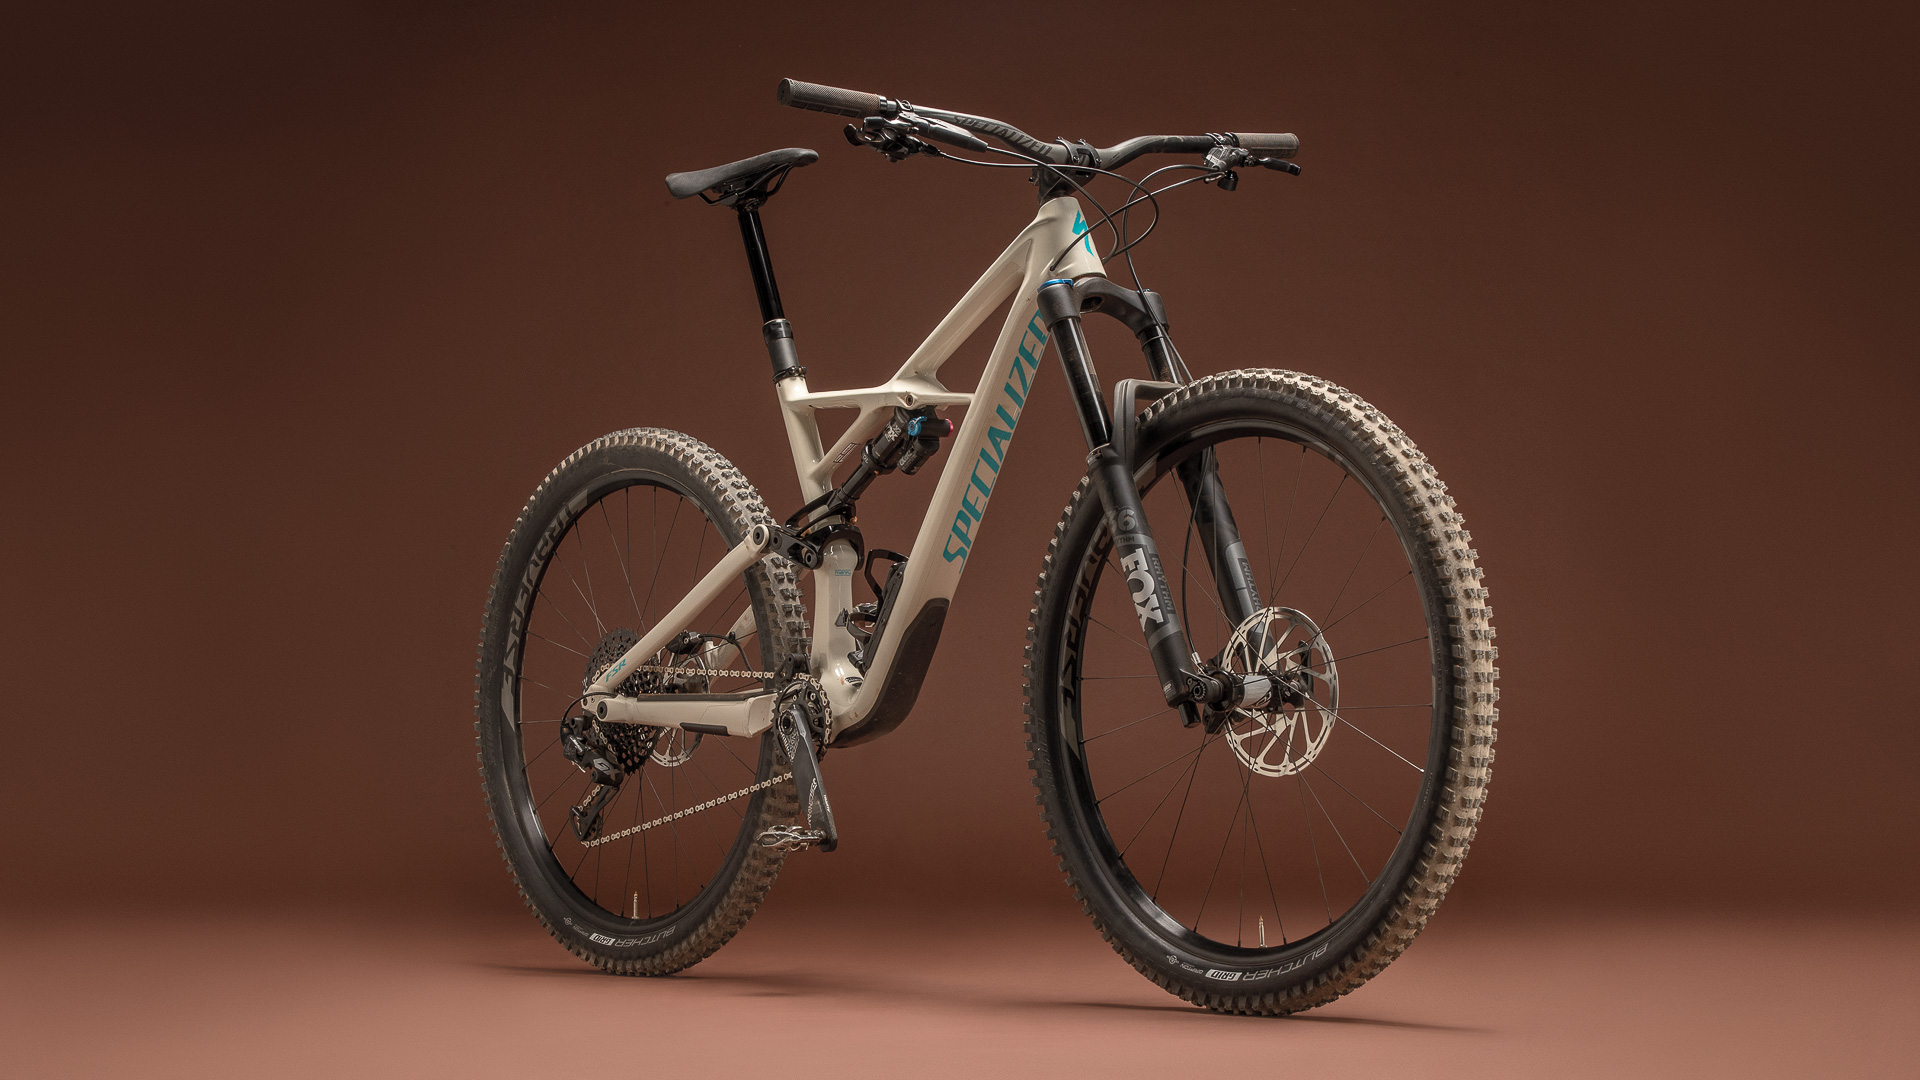 Review: Specialized Enduro Elite 29 | Bible of Bike Tests